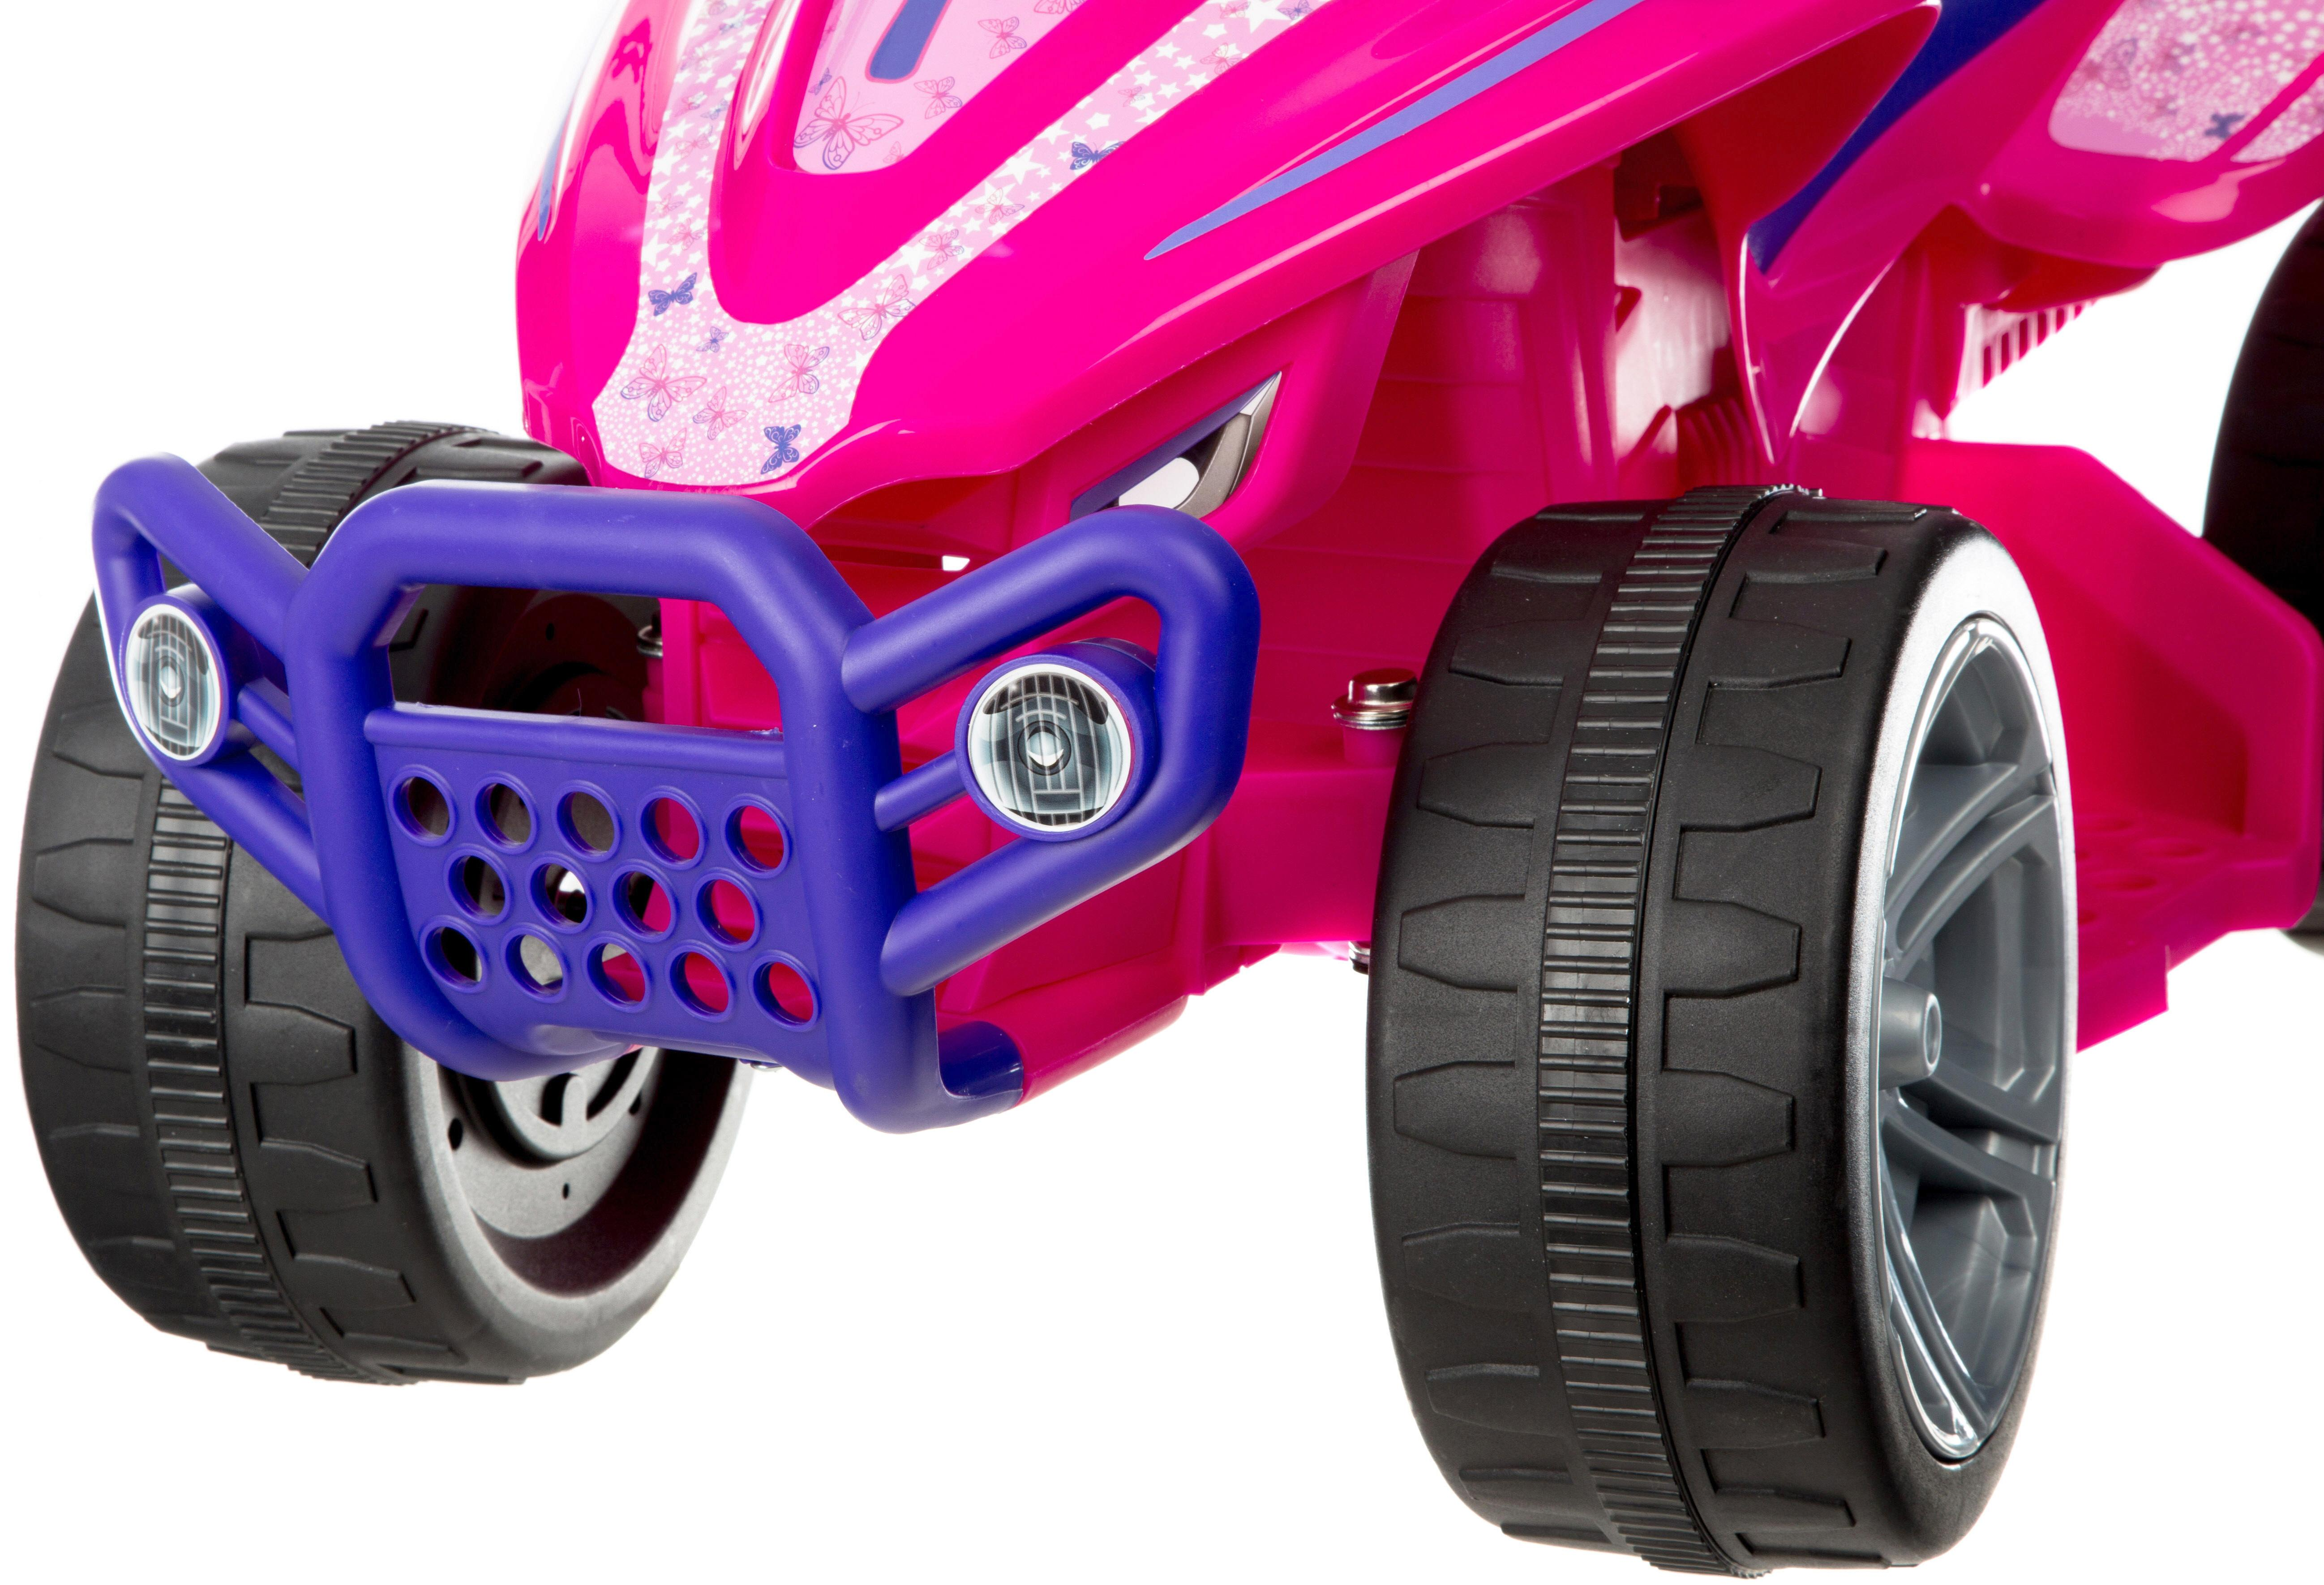 Roadsterz-Volt-6V-Electric-Ride-On-Quad-Rechargeable-Battery-4-Wheels-Kids thumbnail 8